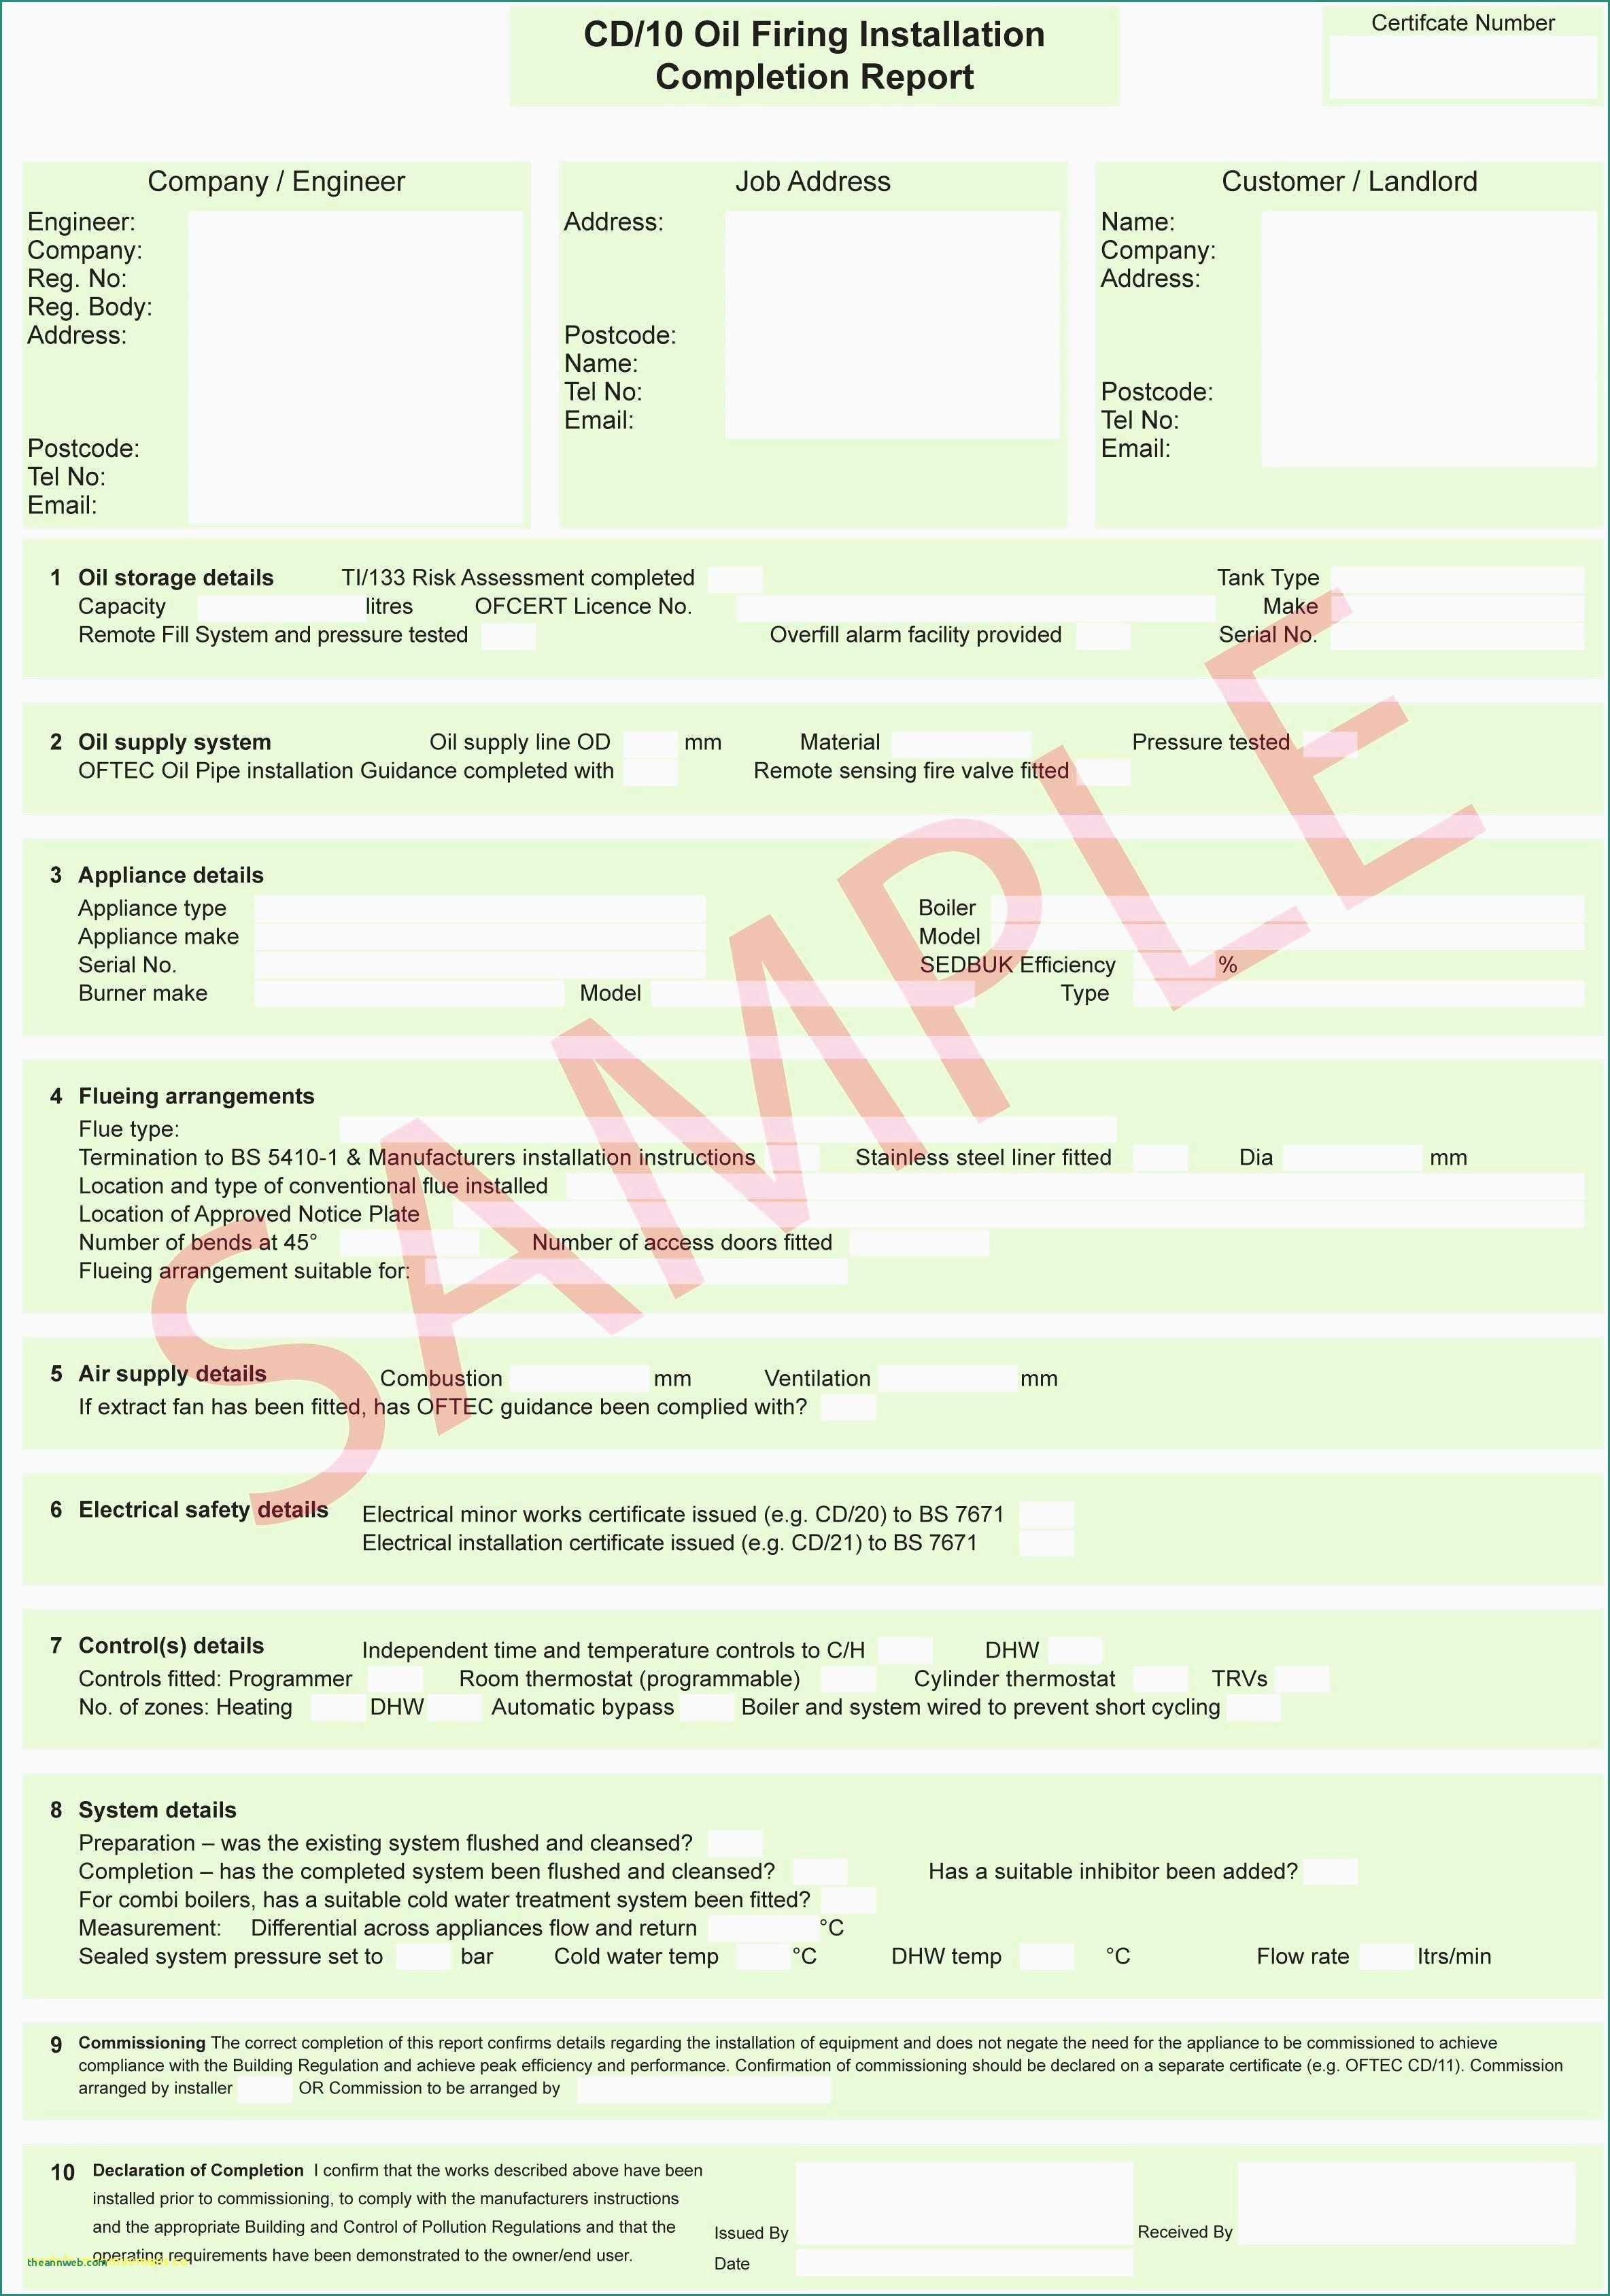 Employment Contract Termination Template